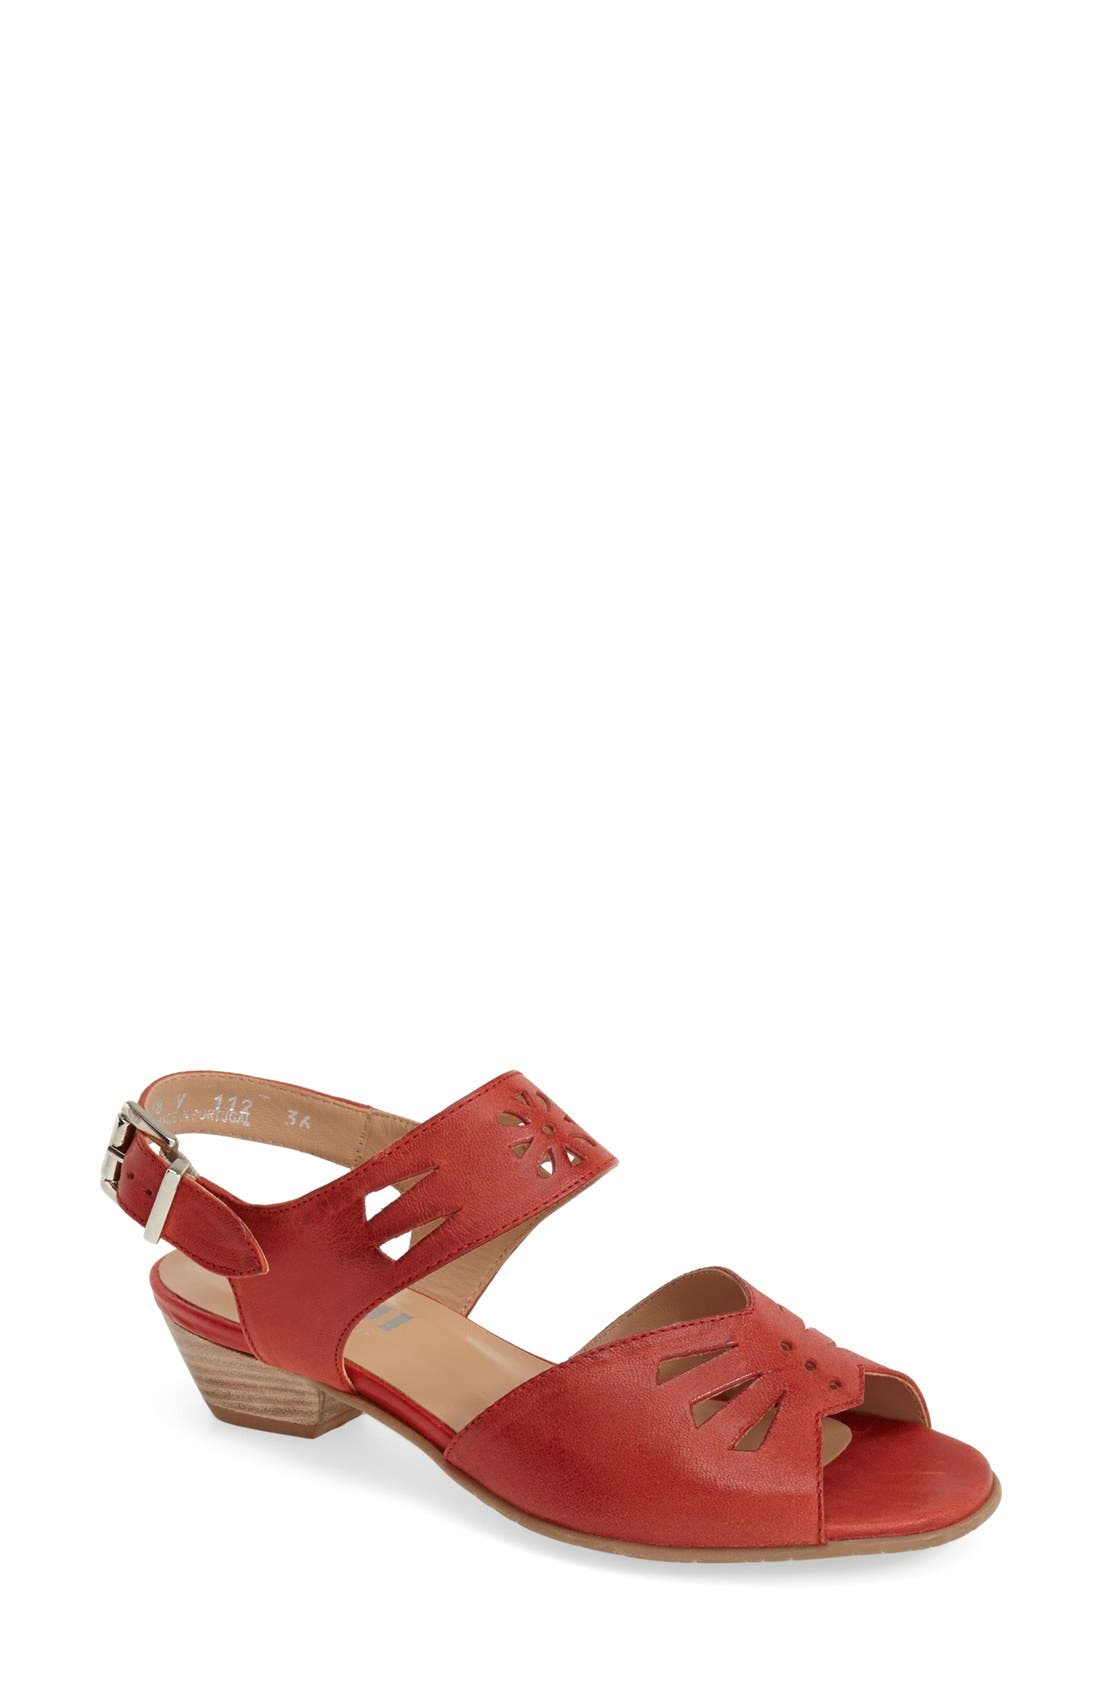 'V112' Perforated Leather Sandal,                         Main,                         color, RED